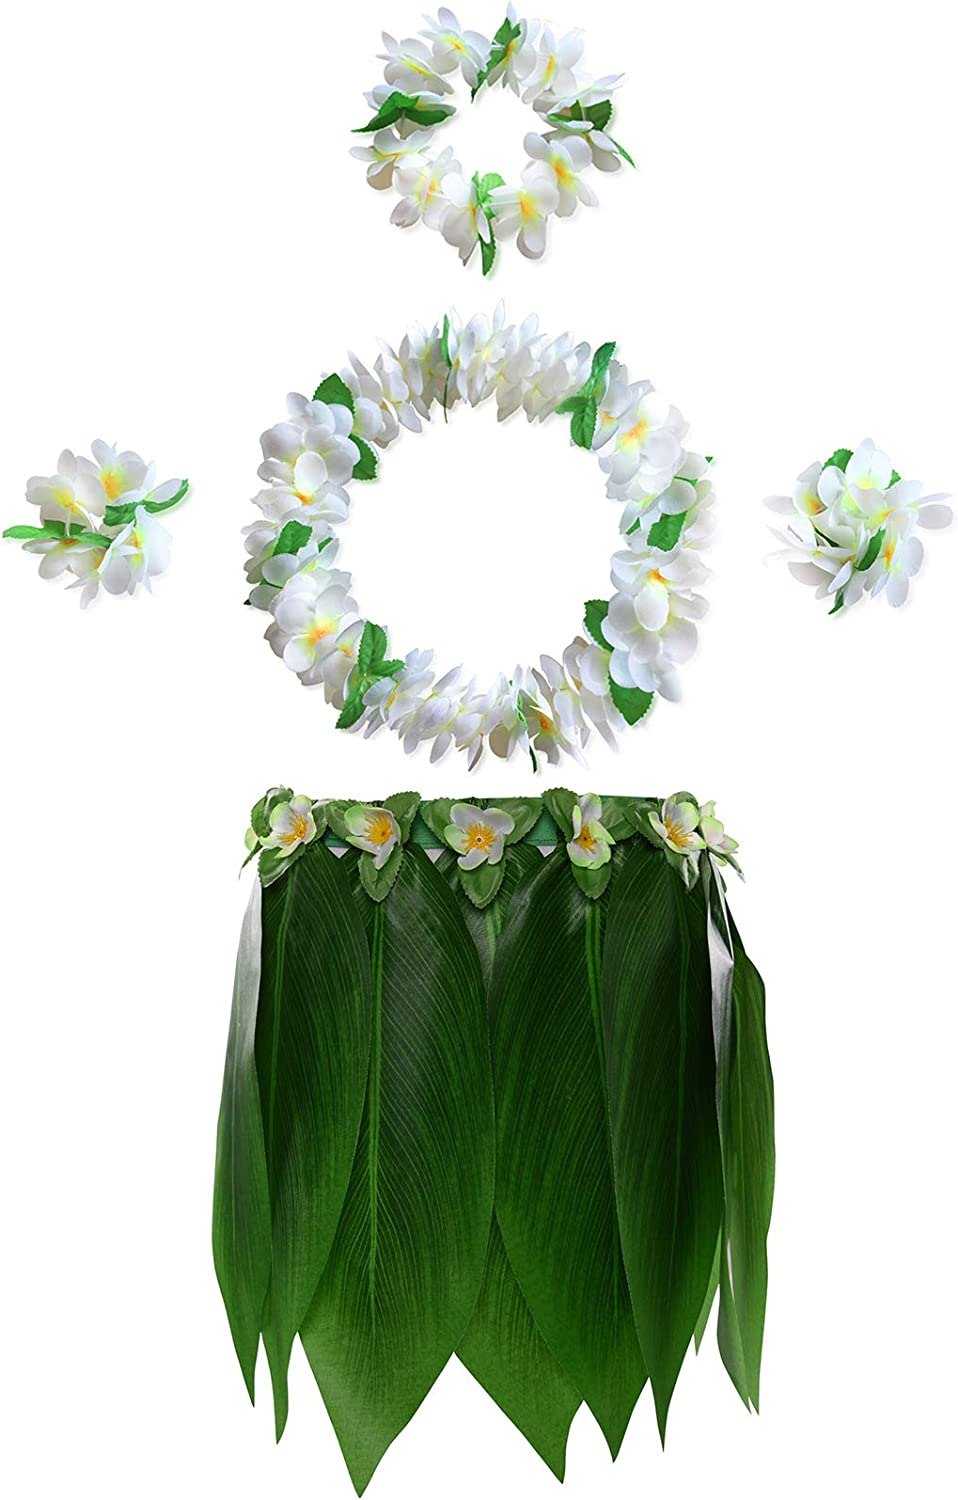 F KEFAN Leaf Hula Skirt and Hawaiian Leis Set Grass Skirt with Artificial Hibiscus Flowers for Kids